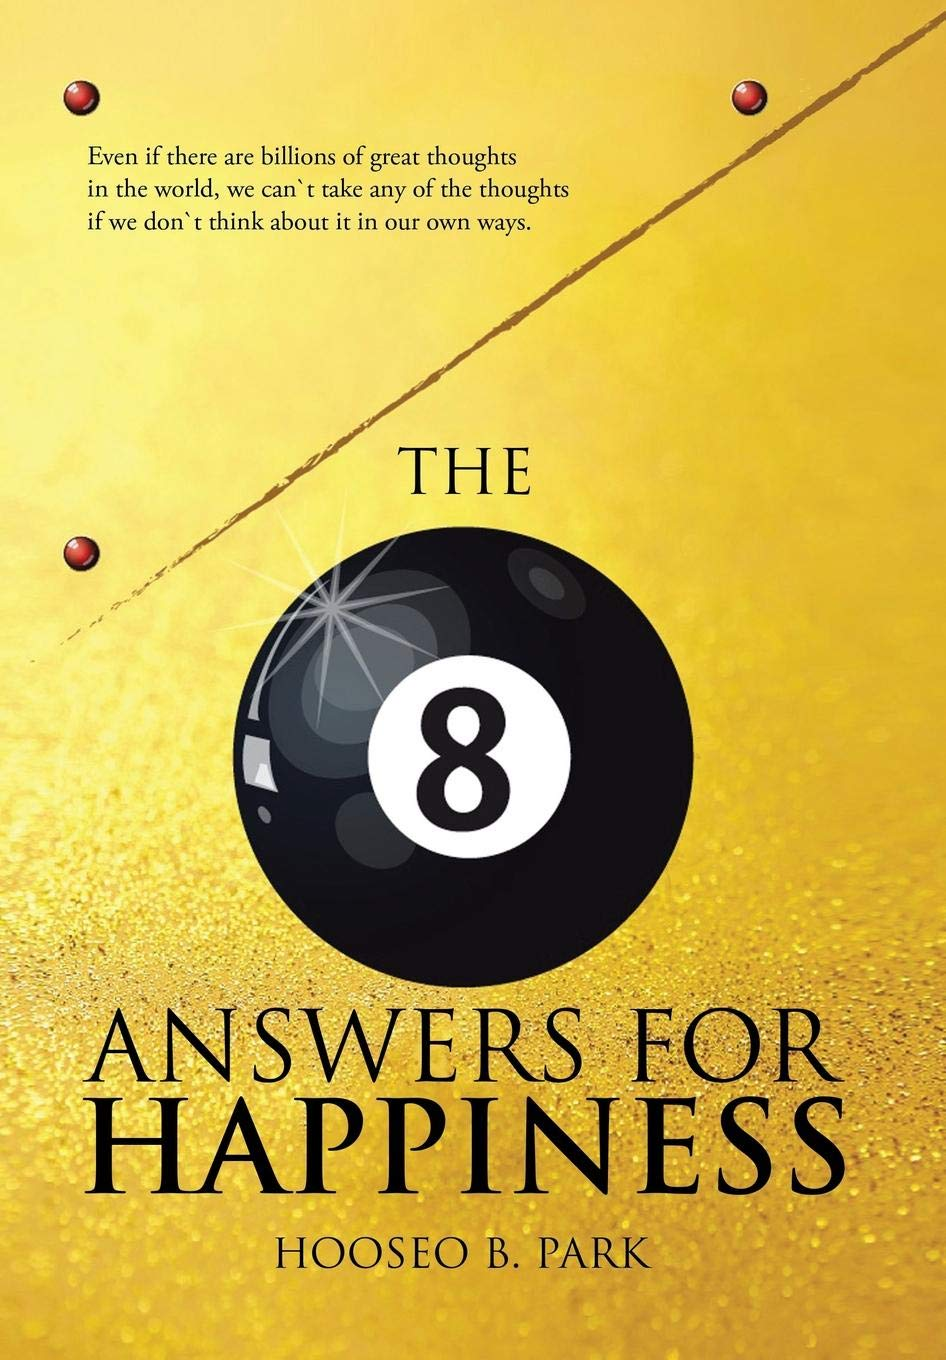 The Eight Answers for Happiness: Amazon.es: Hooseo B. Park: Libros en idiomas extranjeros